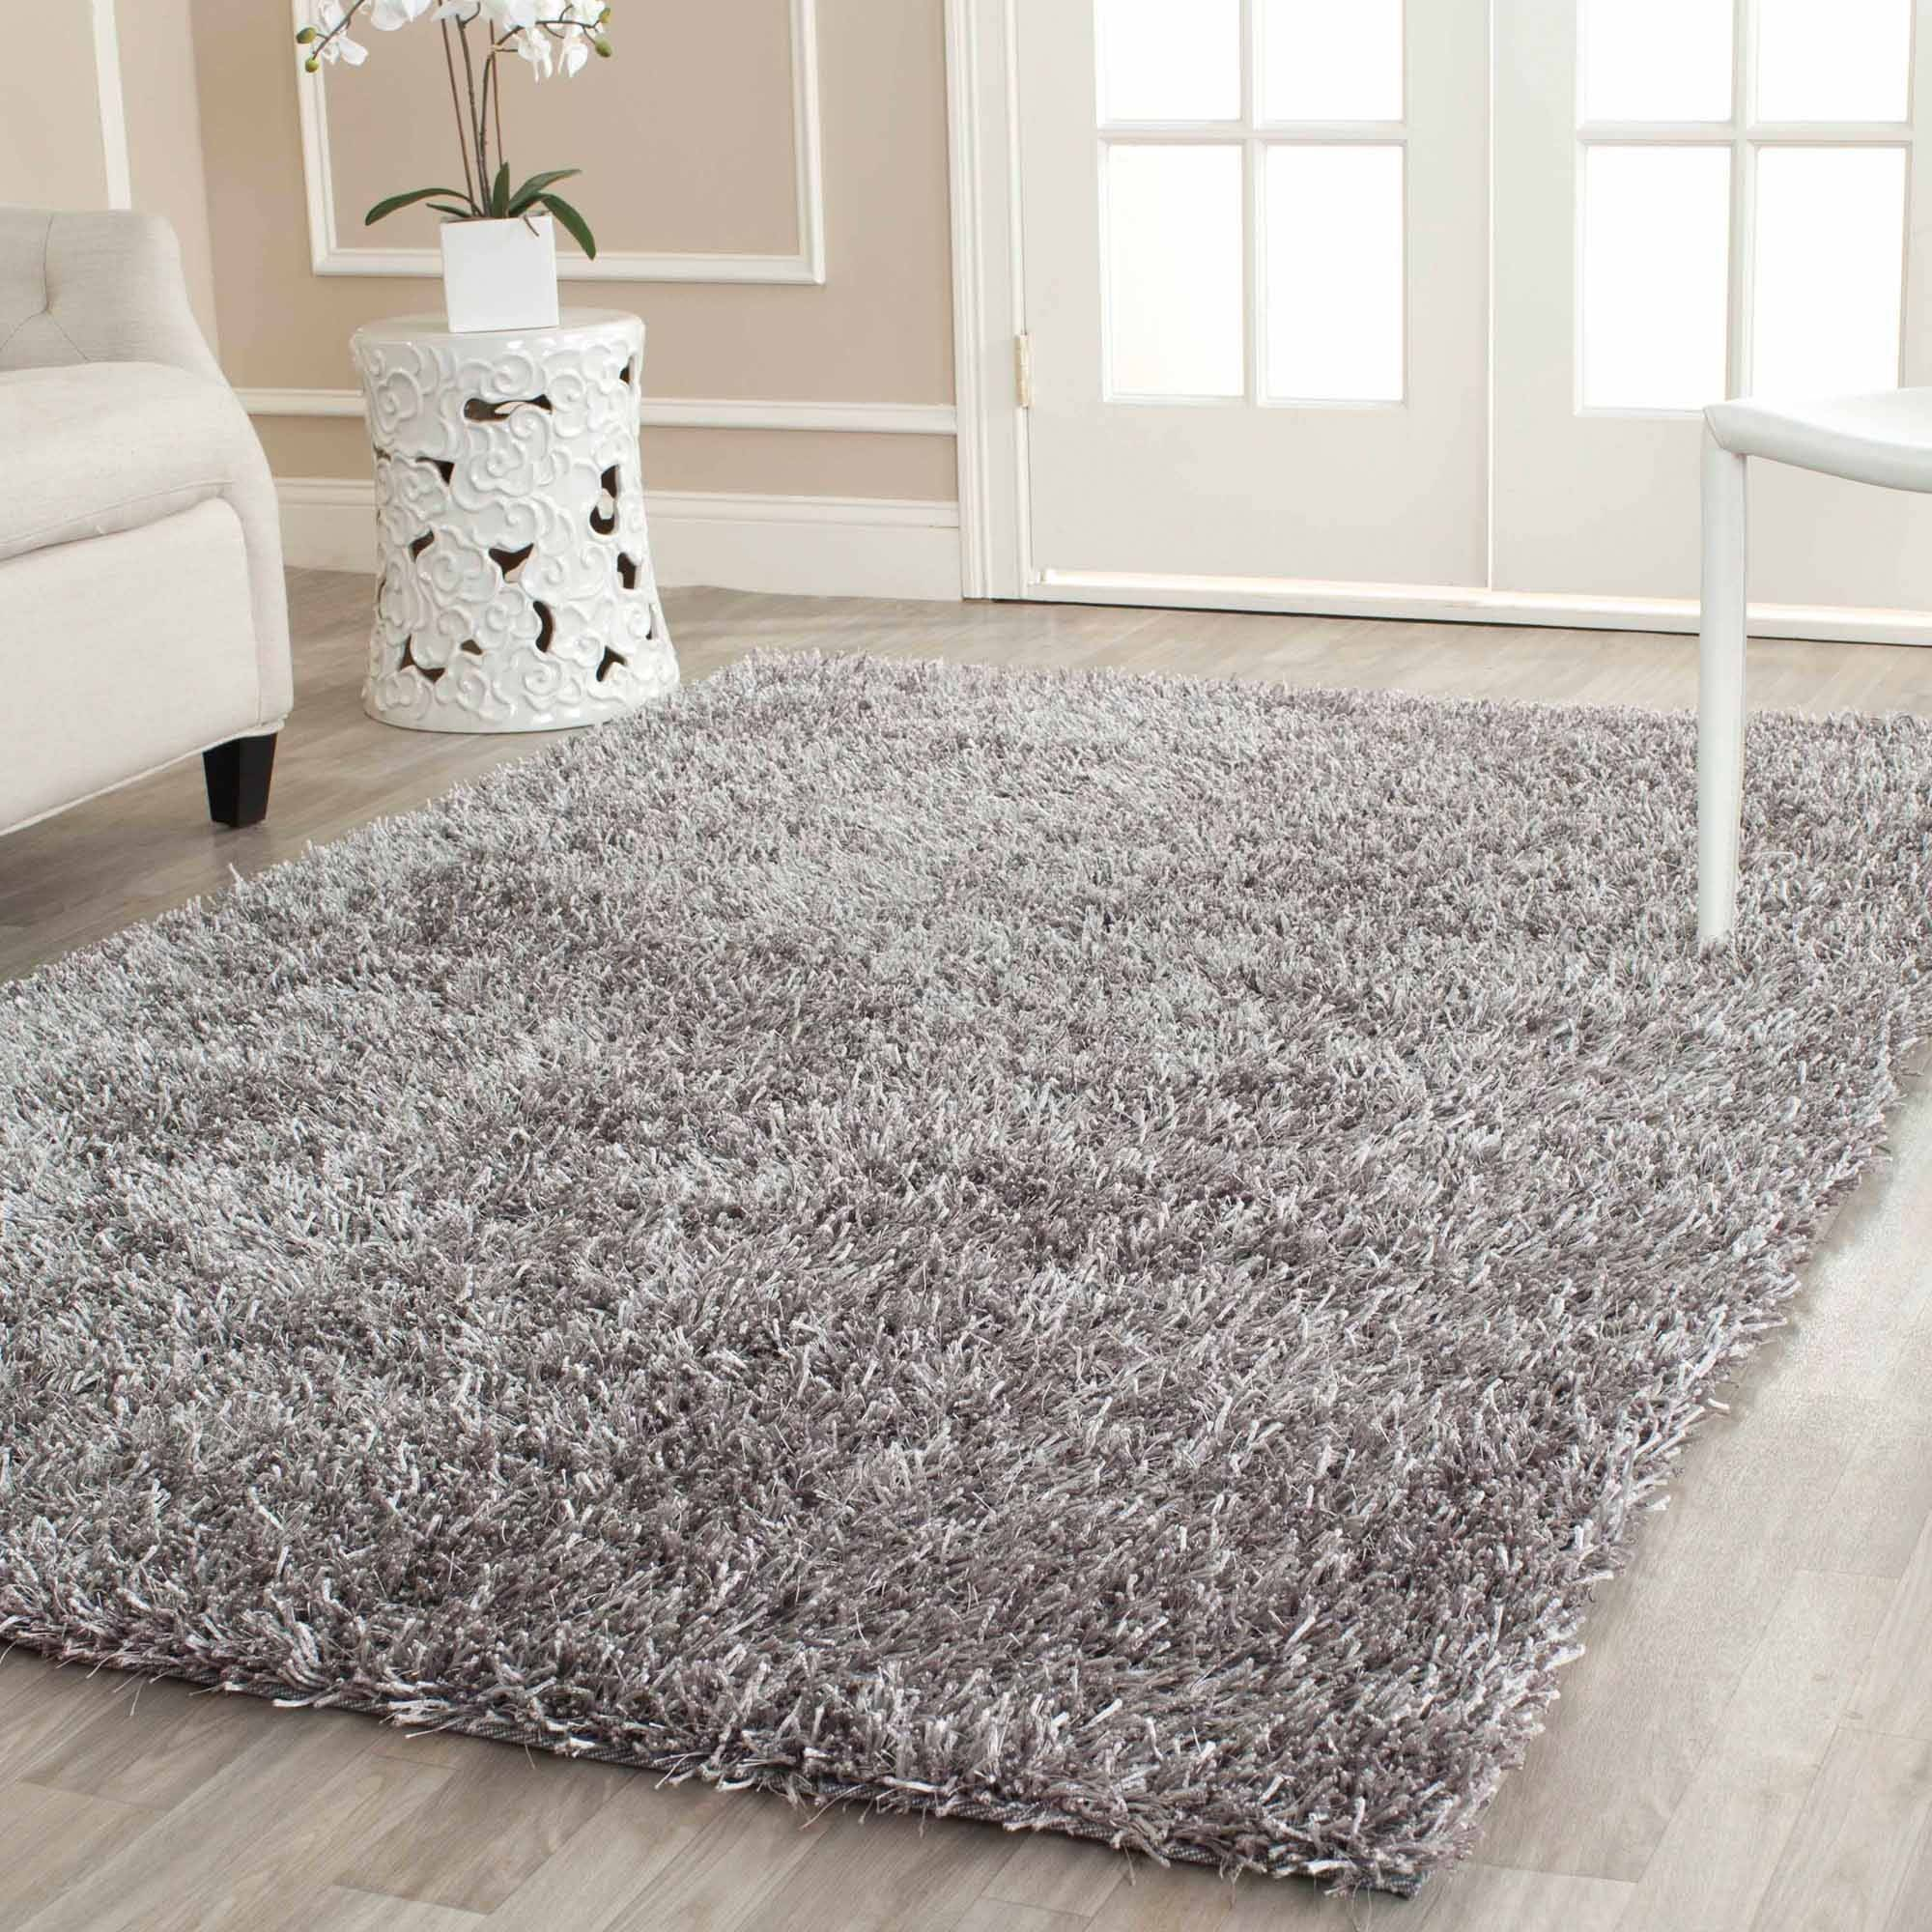 Safavieh Darius Hand-Tufted Shag Area Rug or Runner